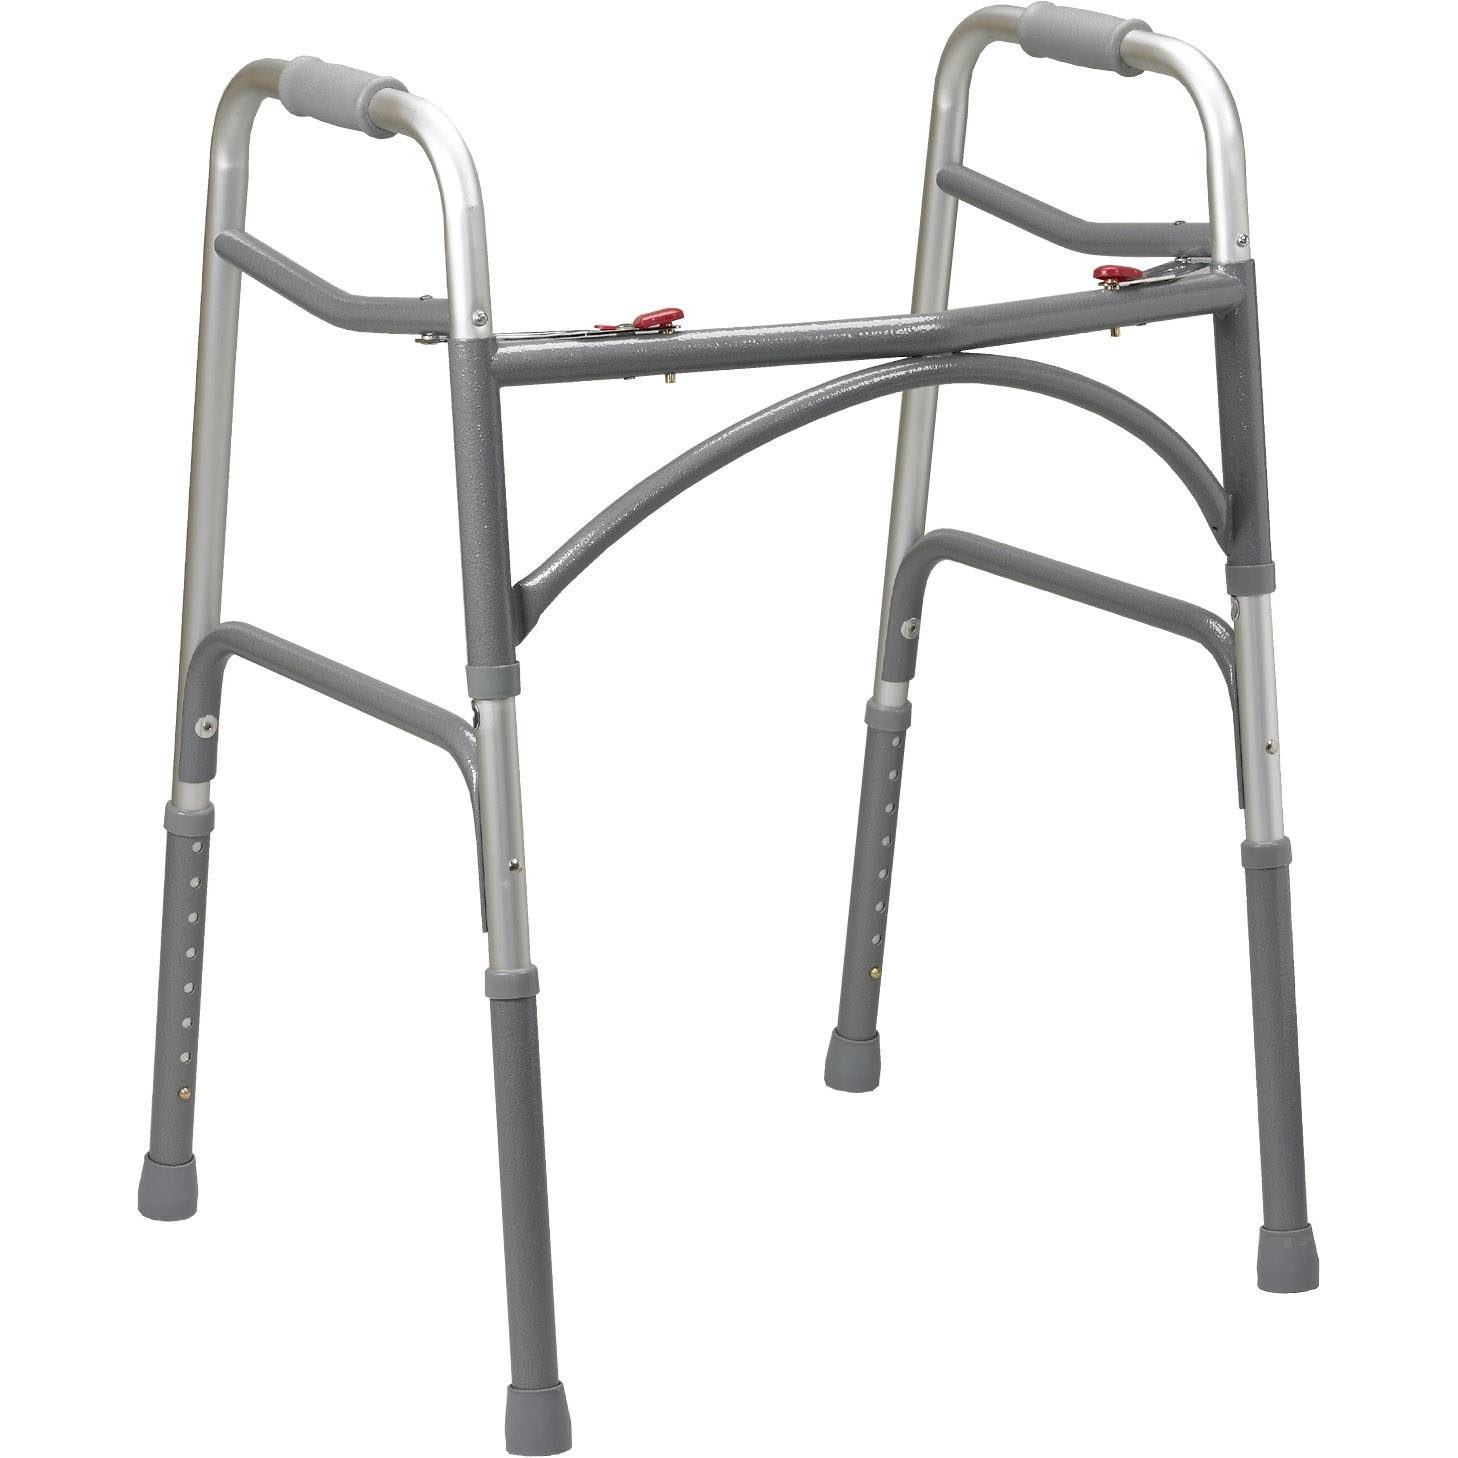 Bariatric (Wider & Deeper Frame Design) Aluminum Folding Walker, Two Button